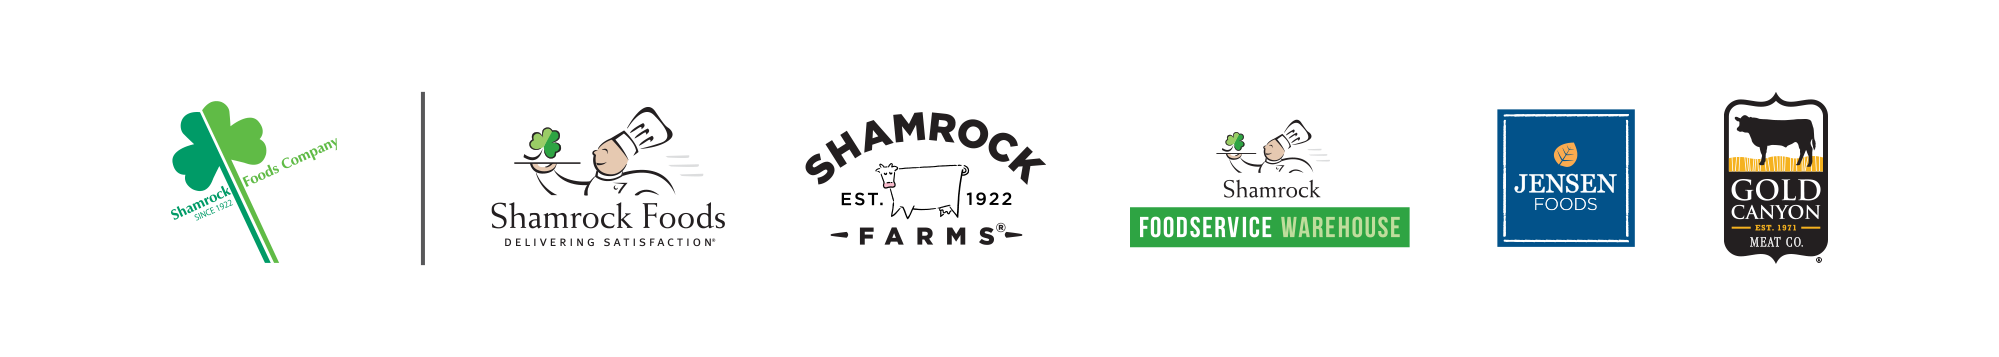 Shamrock Foods Company Jobs: Overview | Shamrock Foods Company